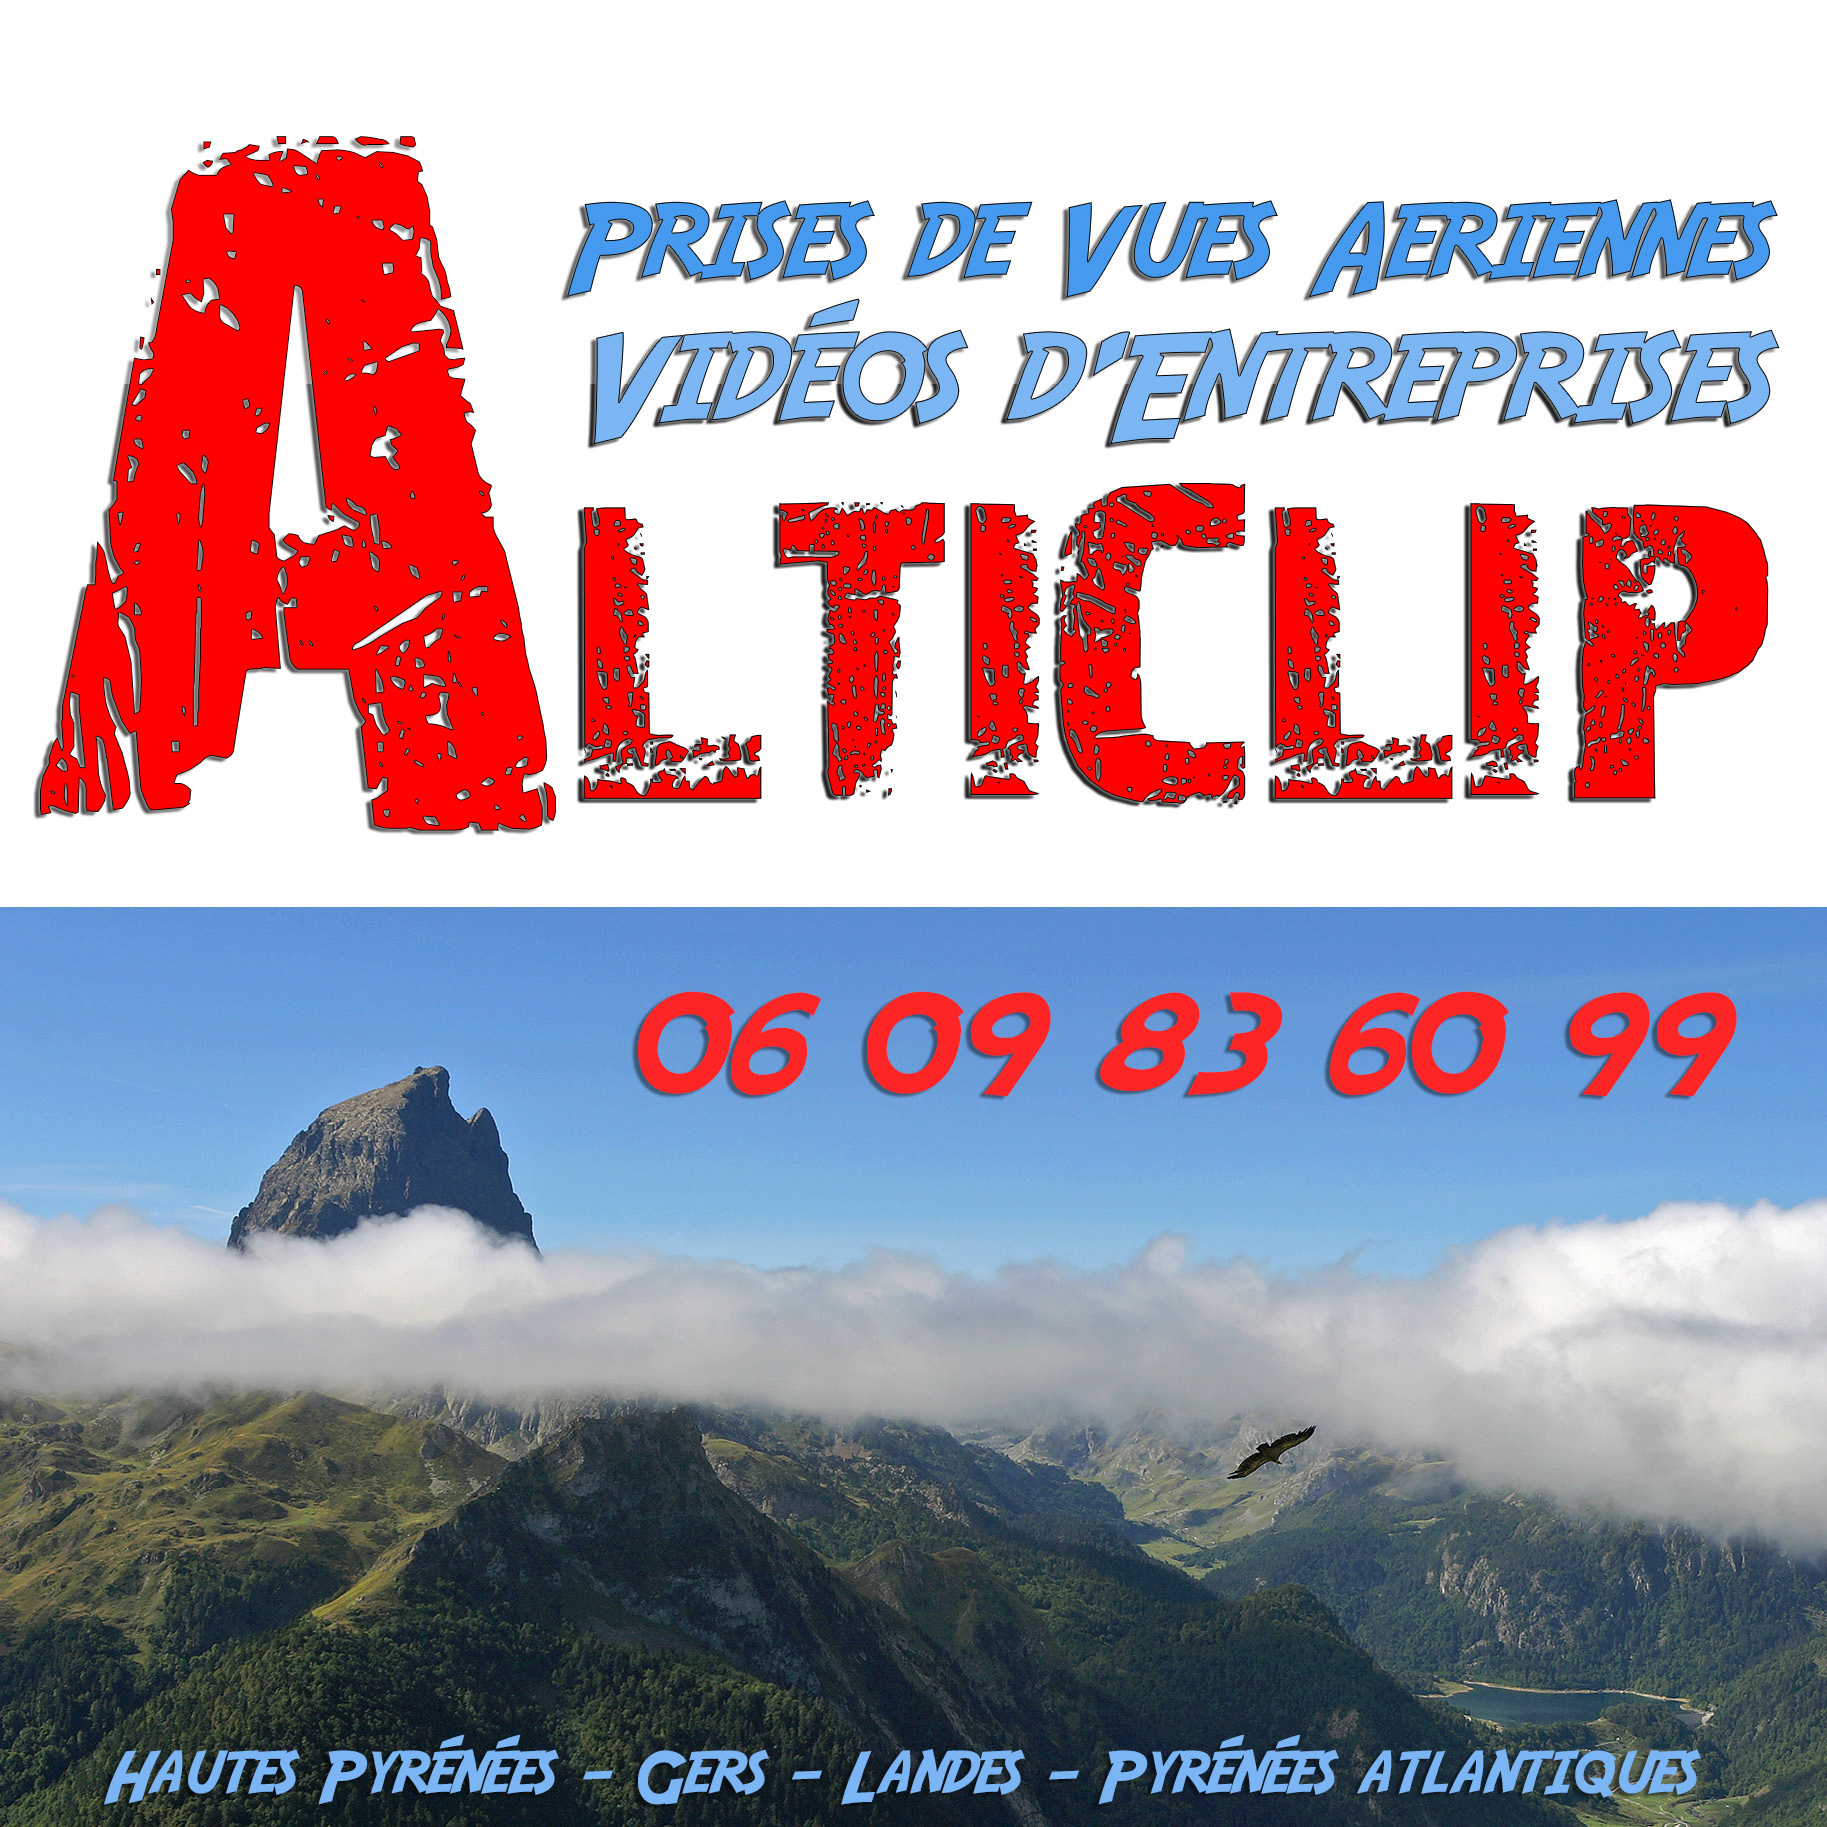 Photographie et video aerienne Gironde